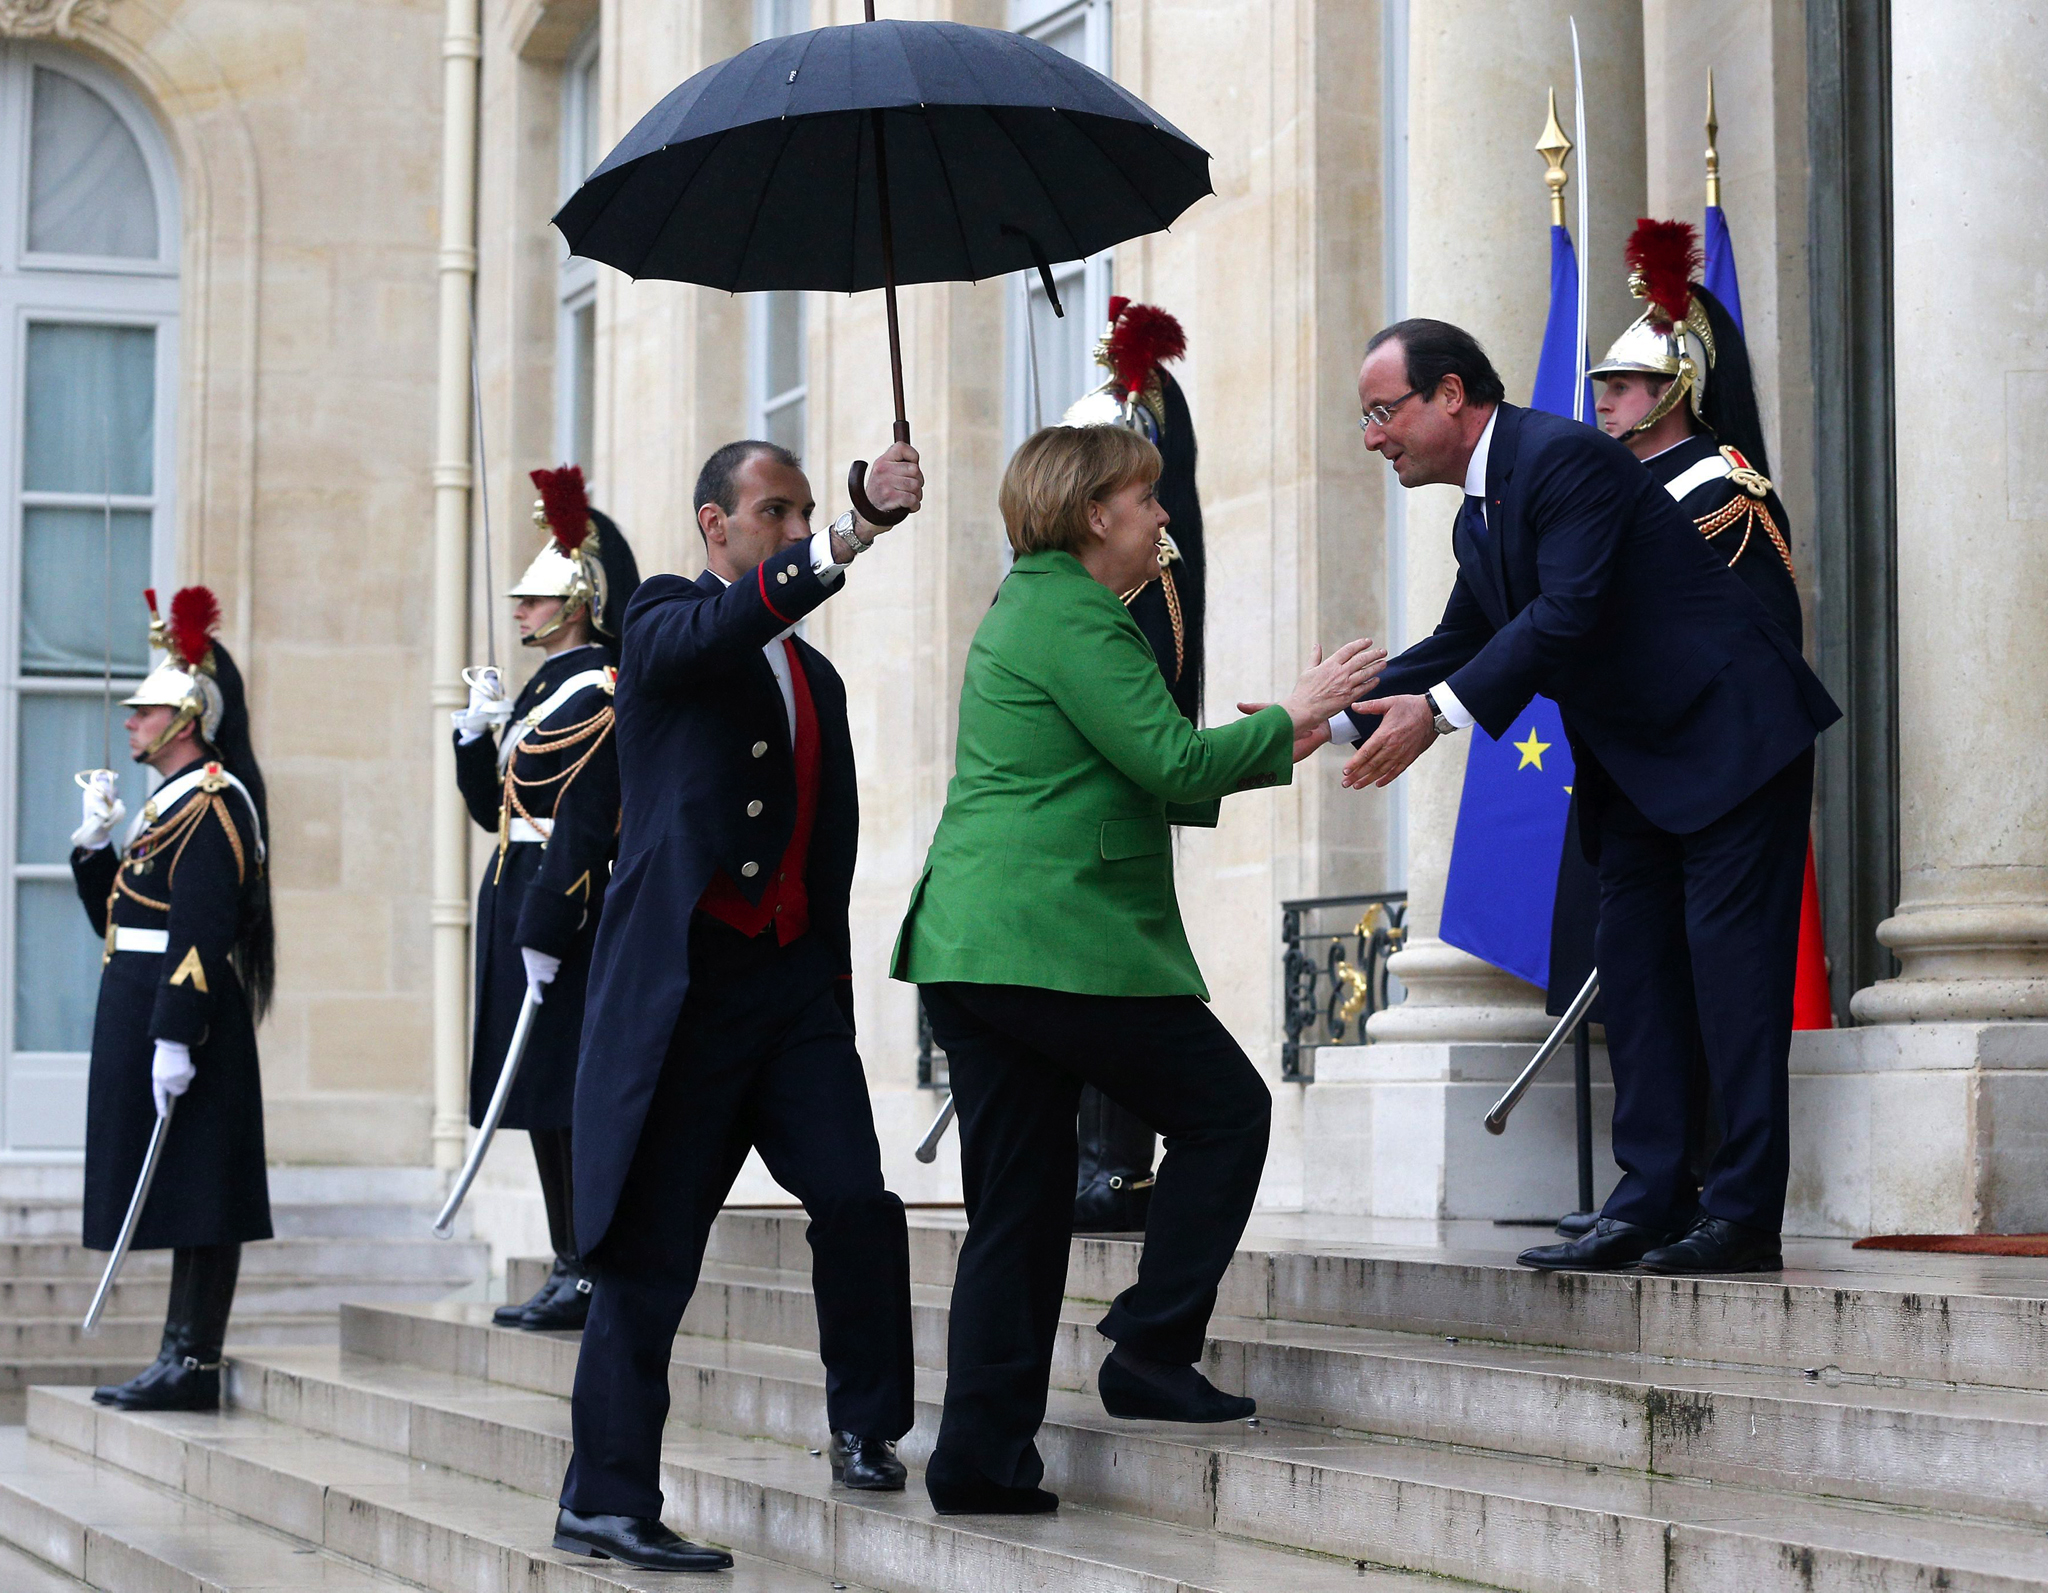 French President Francois Hollande greets German Chancellor Angela Merkel upon her arrival at the Elysee Palace, in Paris. European leaders are to discuss the continent's youth unemployment crisis amid concerns that the despair of nearly 6 million jobless is feeding into mounting social tensions and populism.